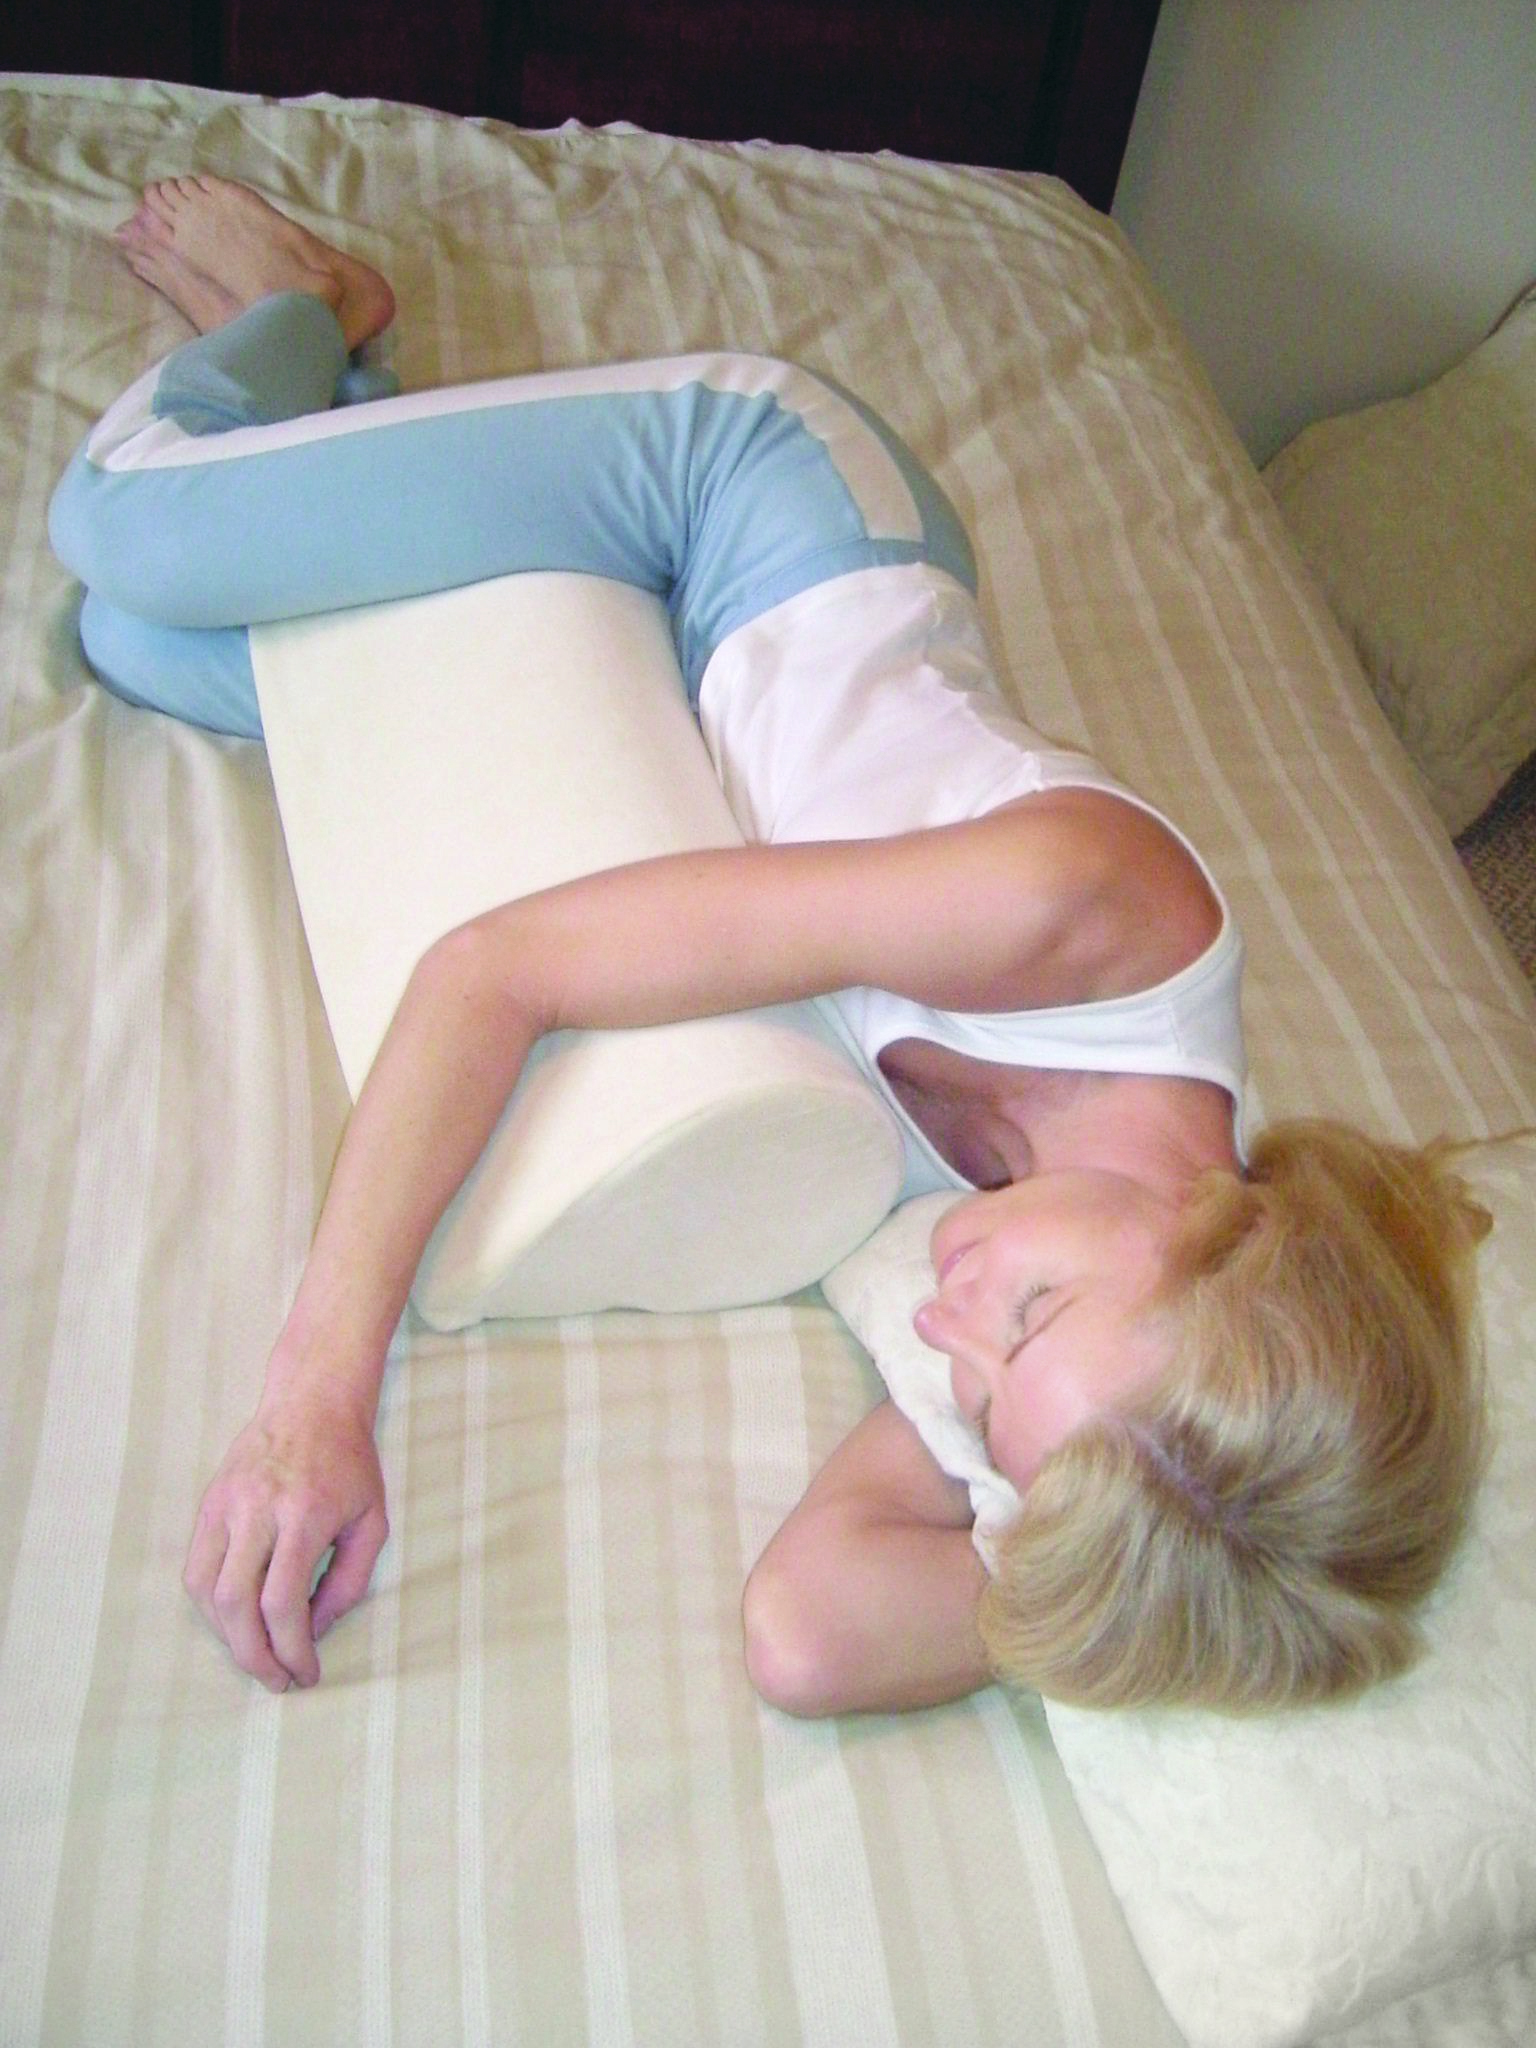 Side Sleepers Teardrop Body Support Pillow